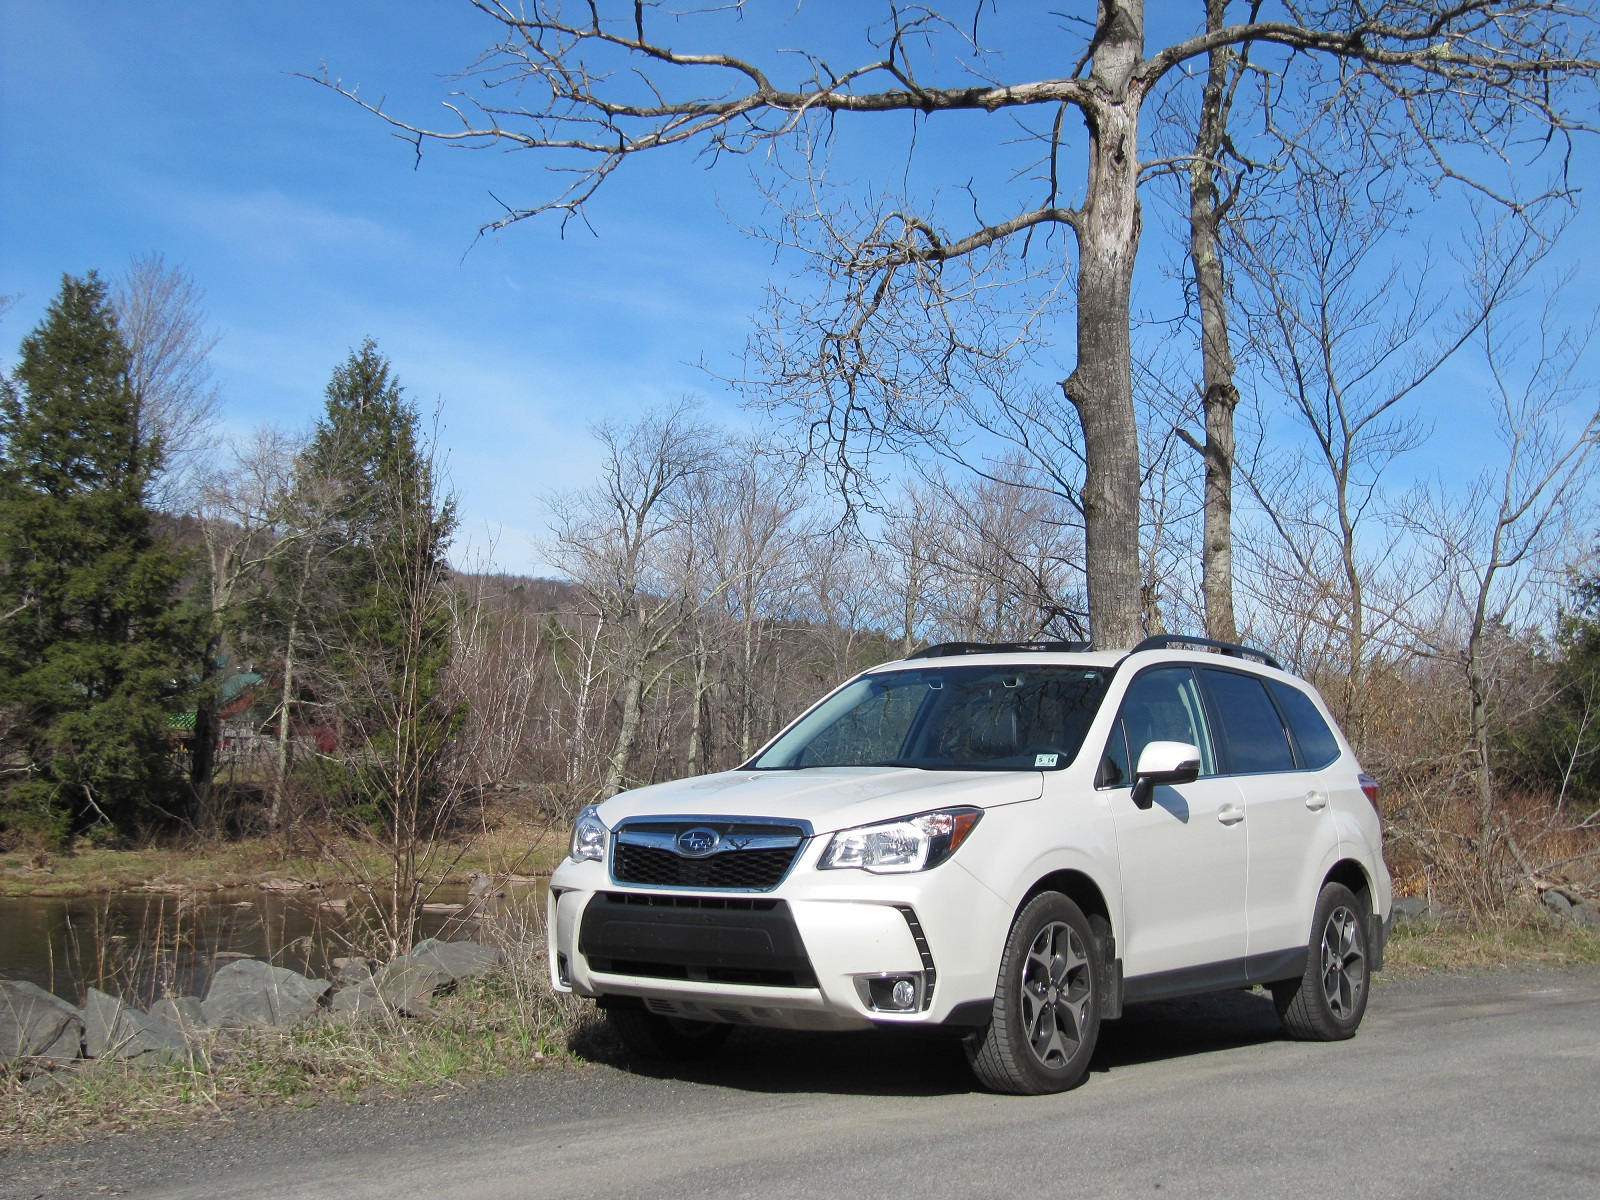 2014 Subaru Forester: Five Things We Liked, Five We Didn't